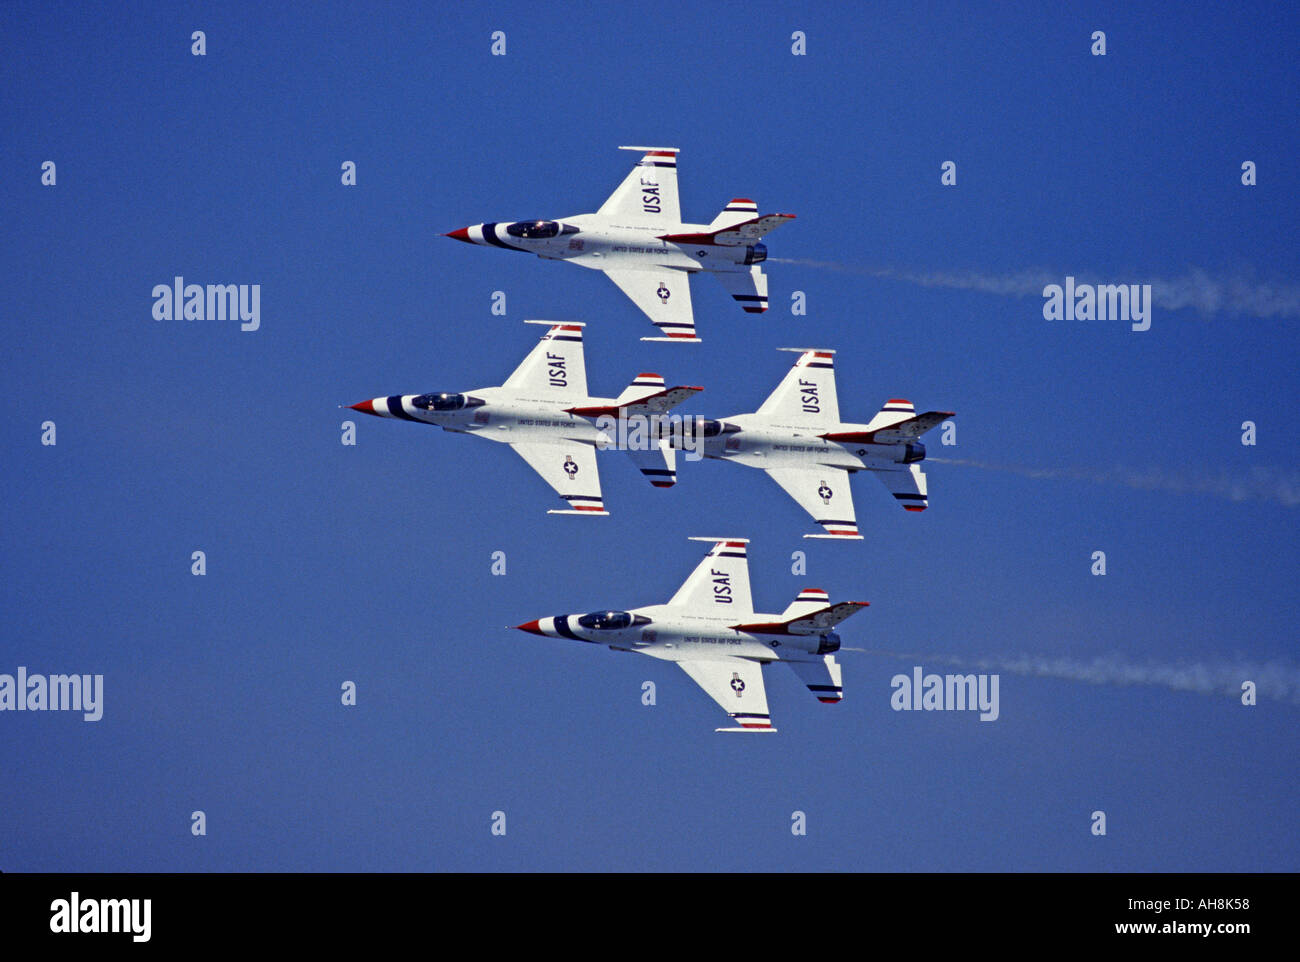 United States Airforce Thunderbirds flying their Lockheed Martin F 16 Fighting Falcon - Stock Image